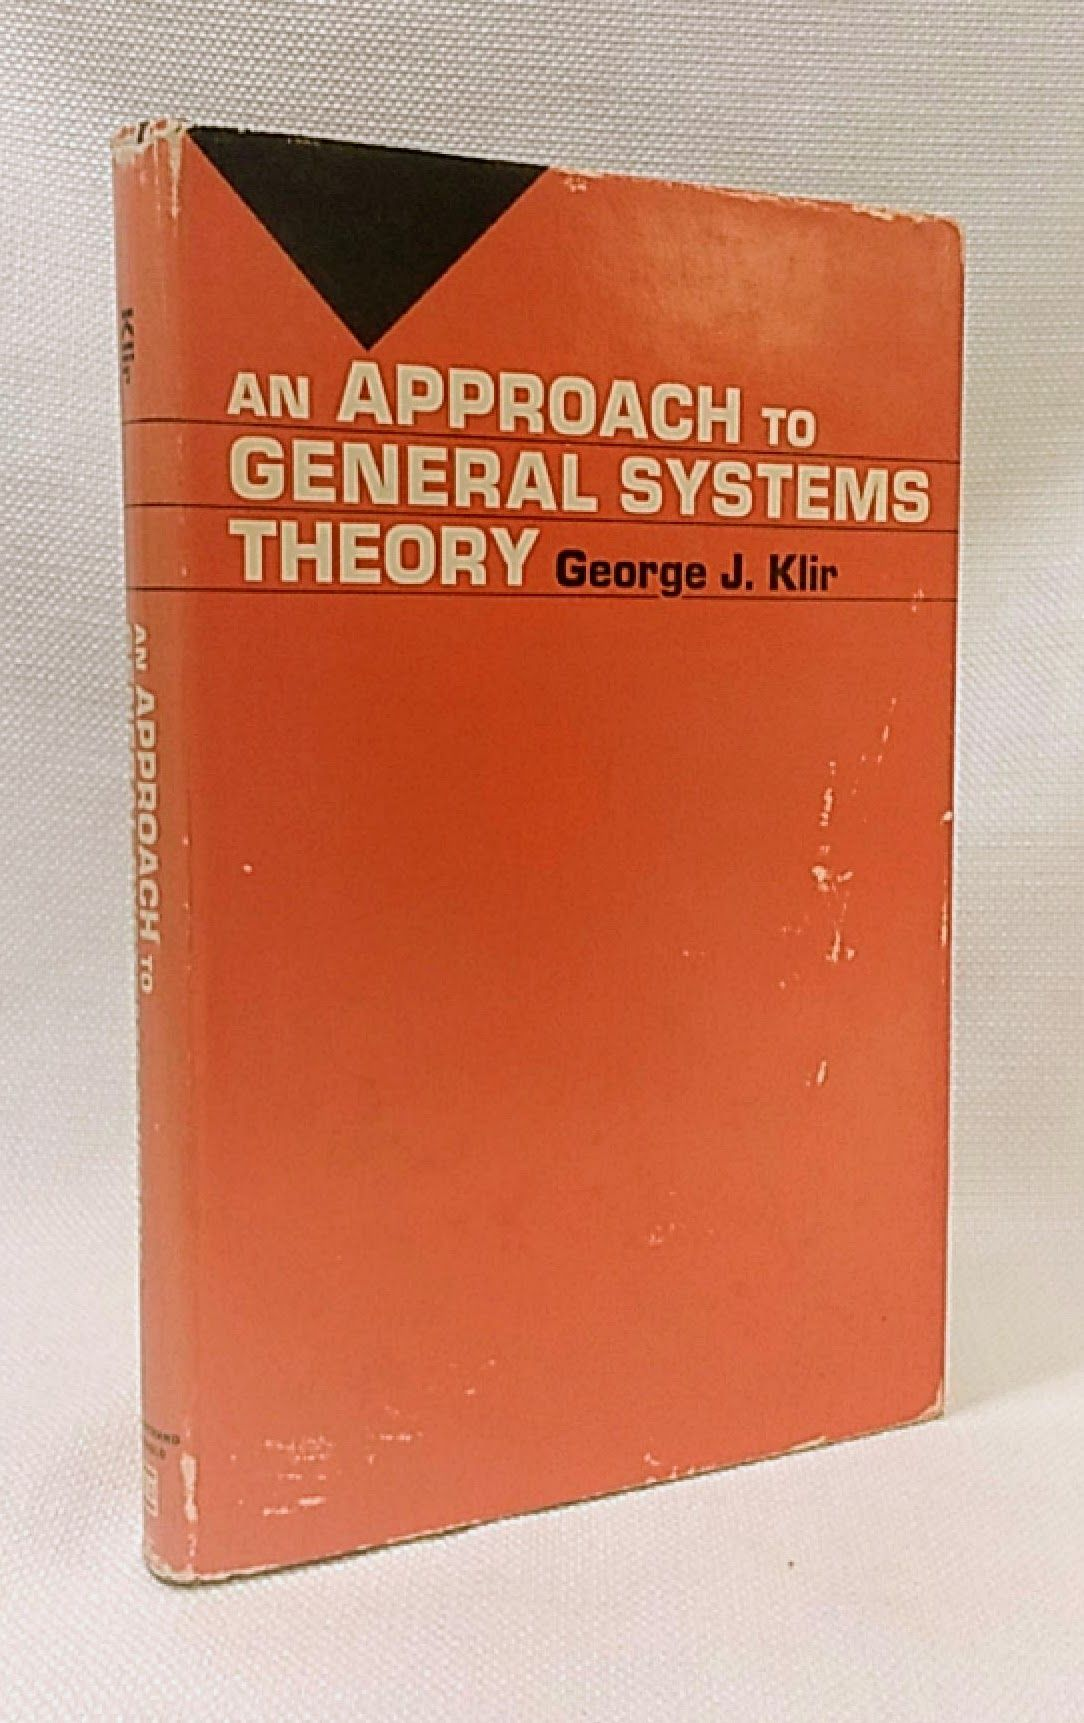 An approach to general systems theory, Klir, George J